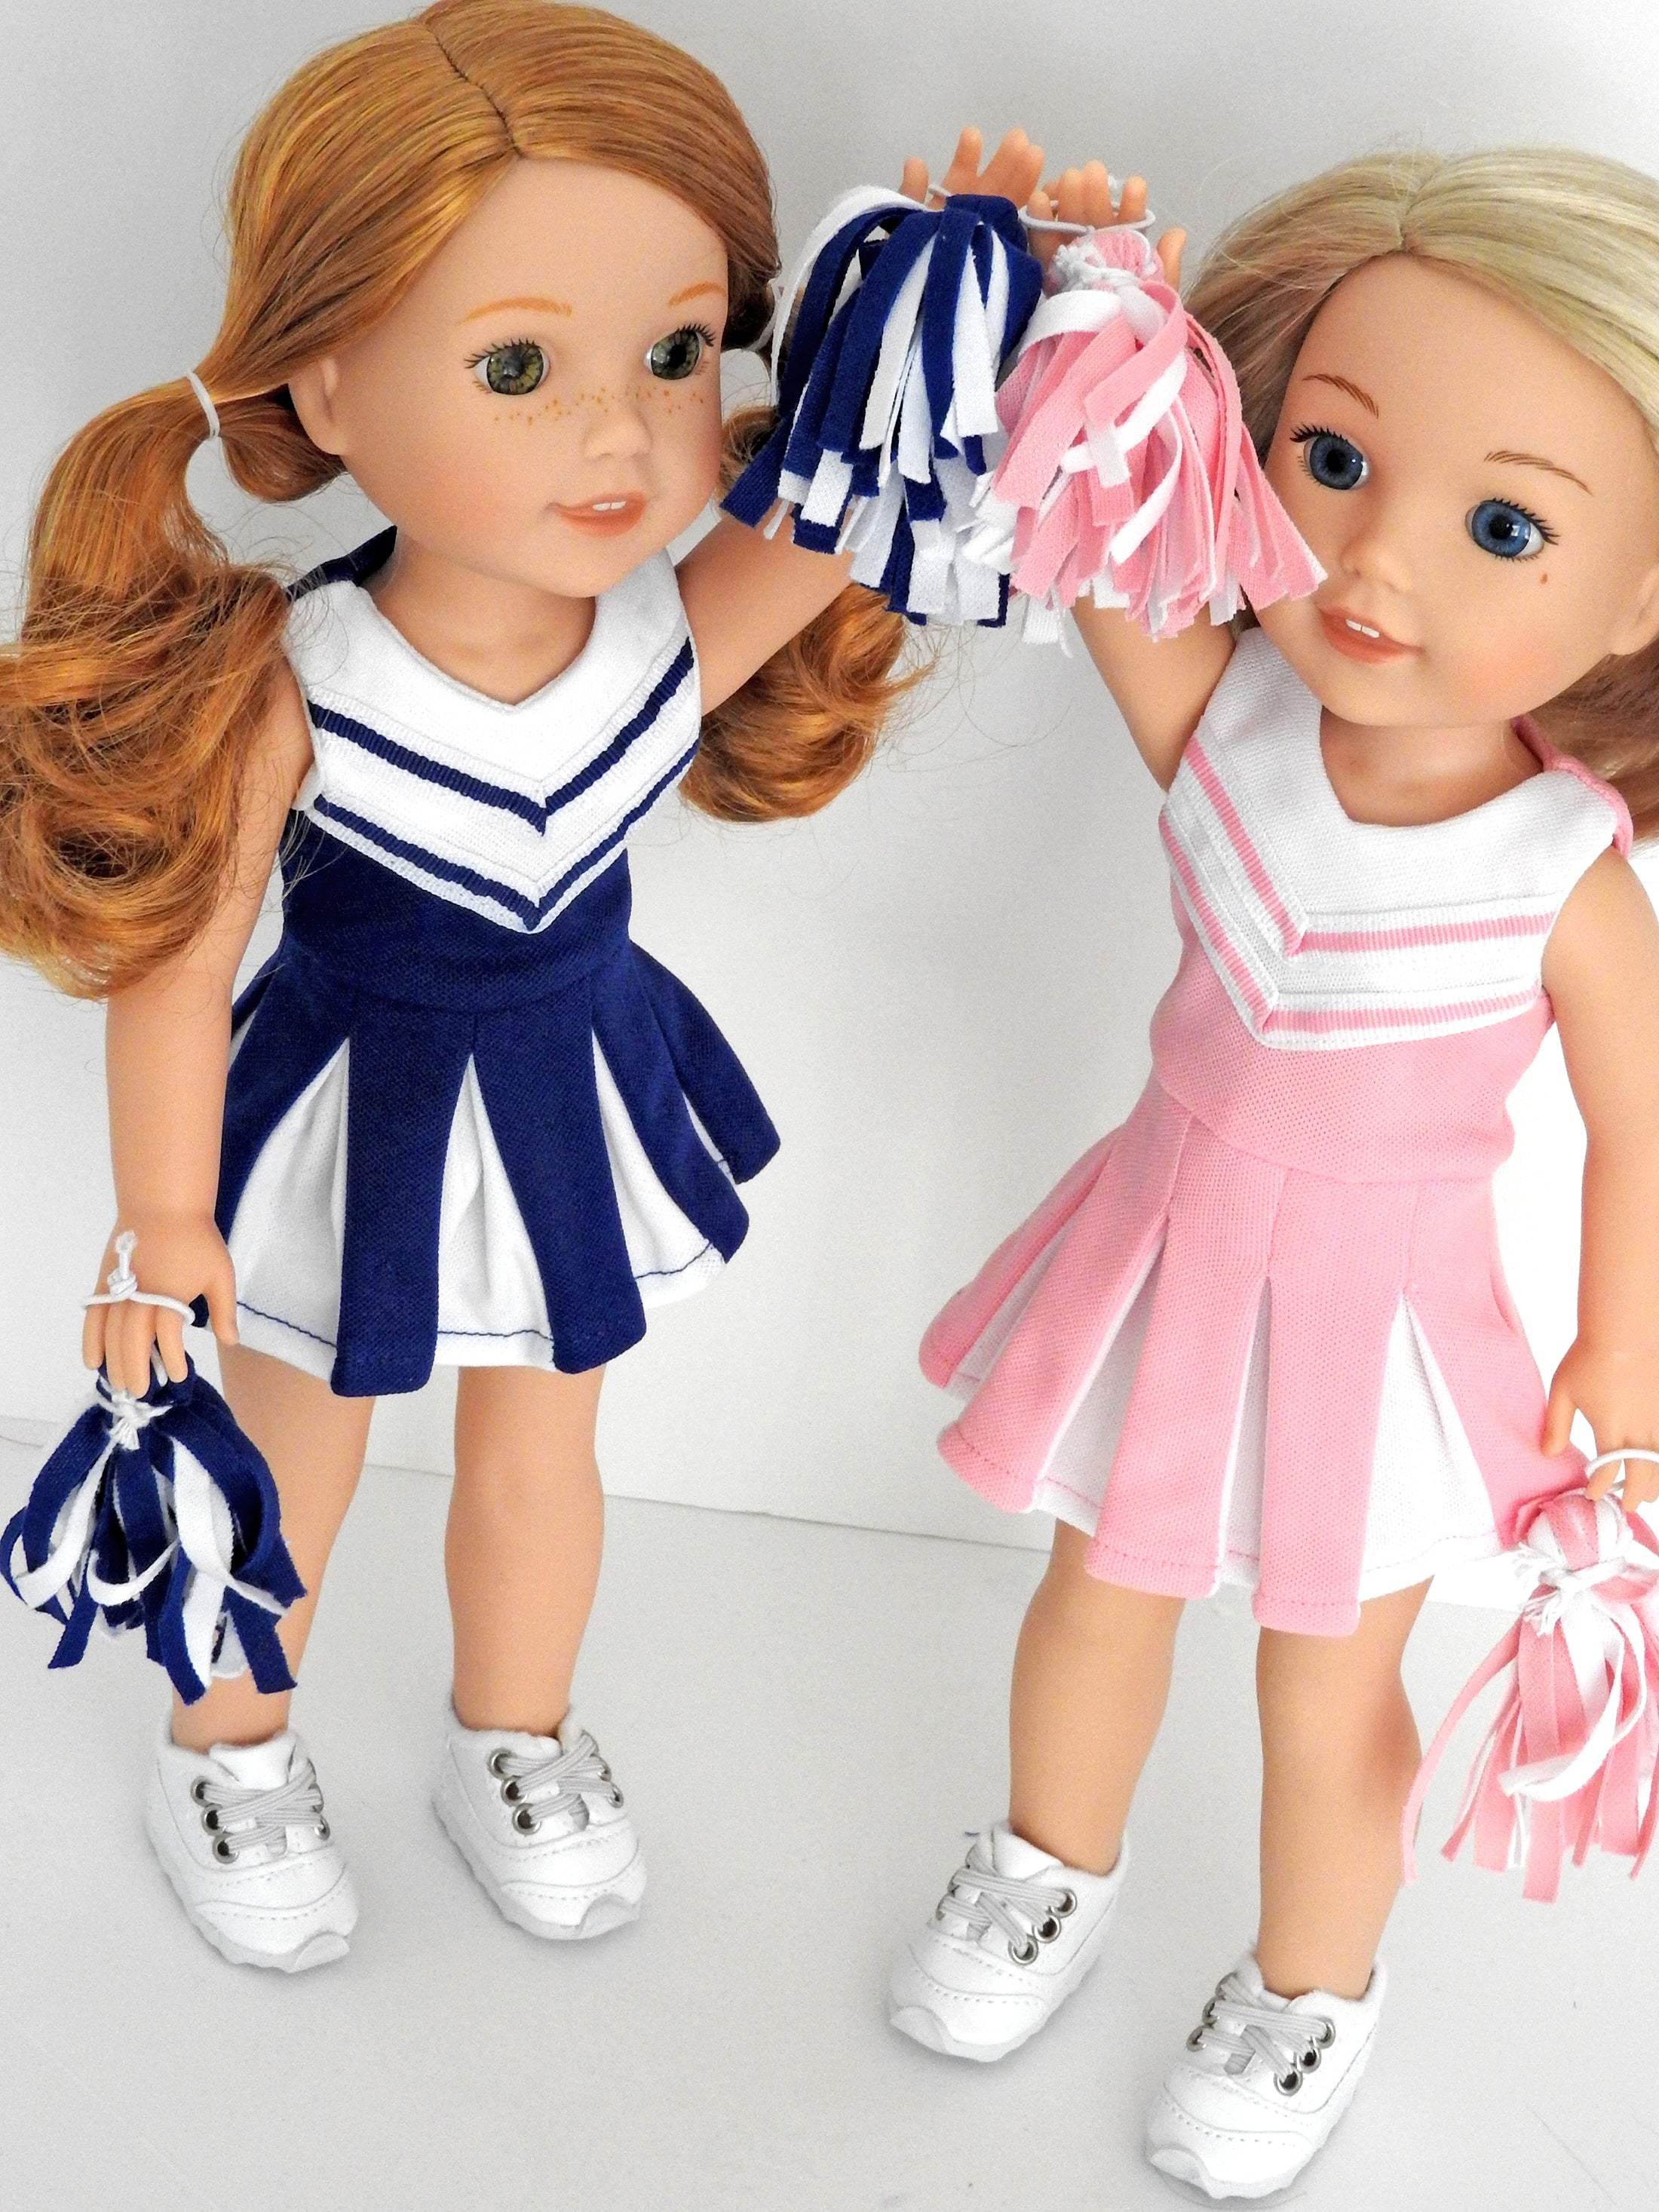 18 Inch Doll Cheerleader Outfit